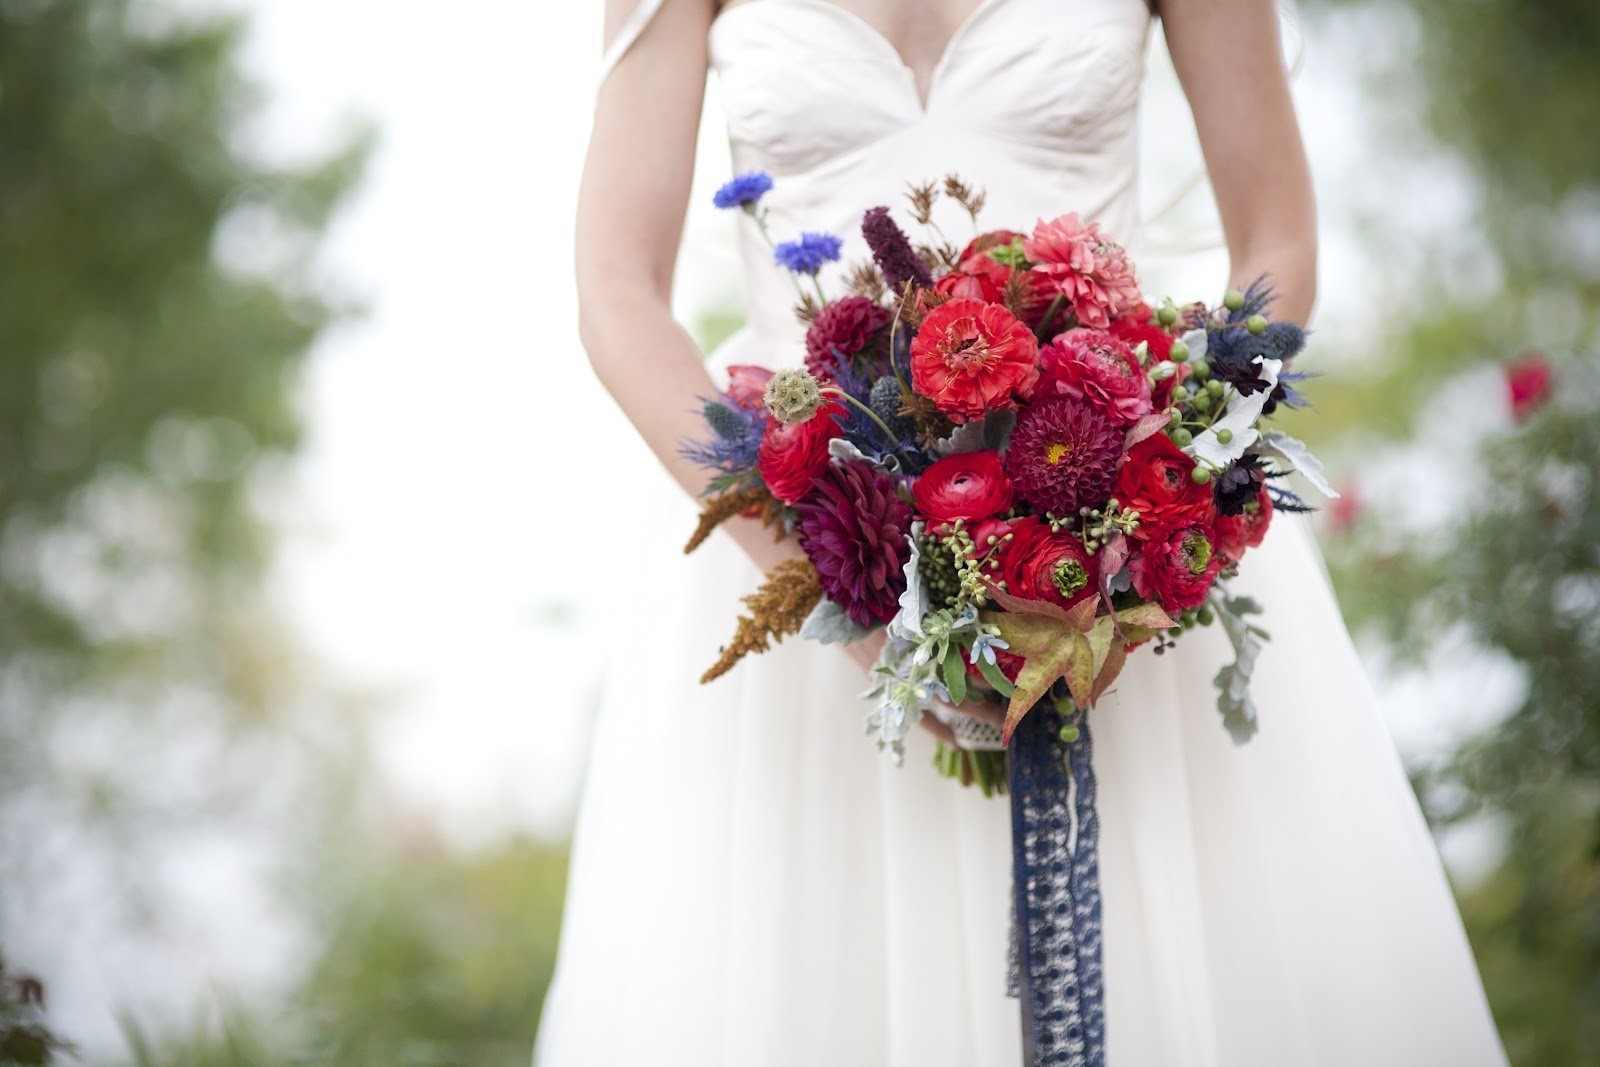 Rich-red-bridal-bouquet-with-navy-lace-ribbon.original